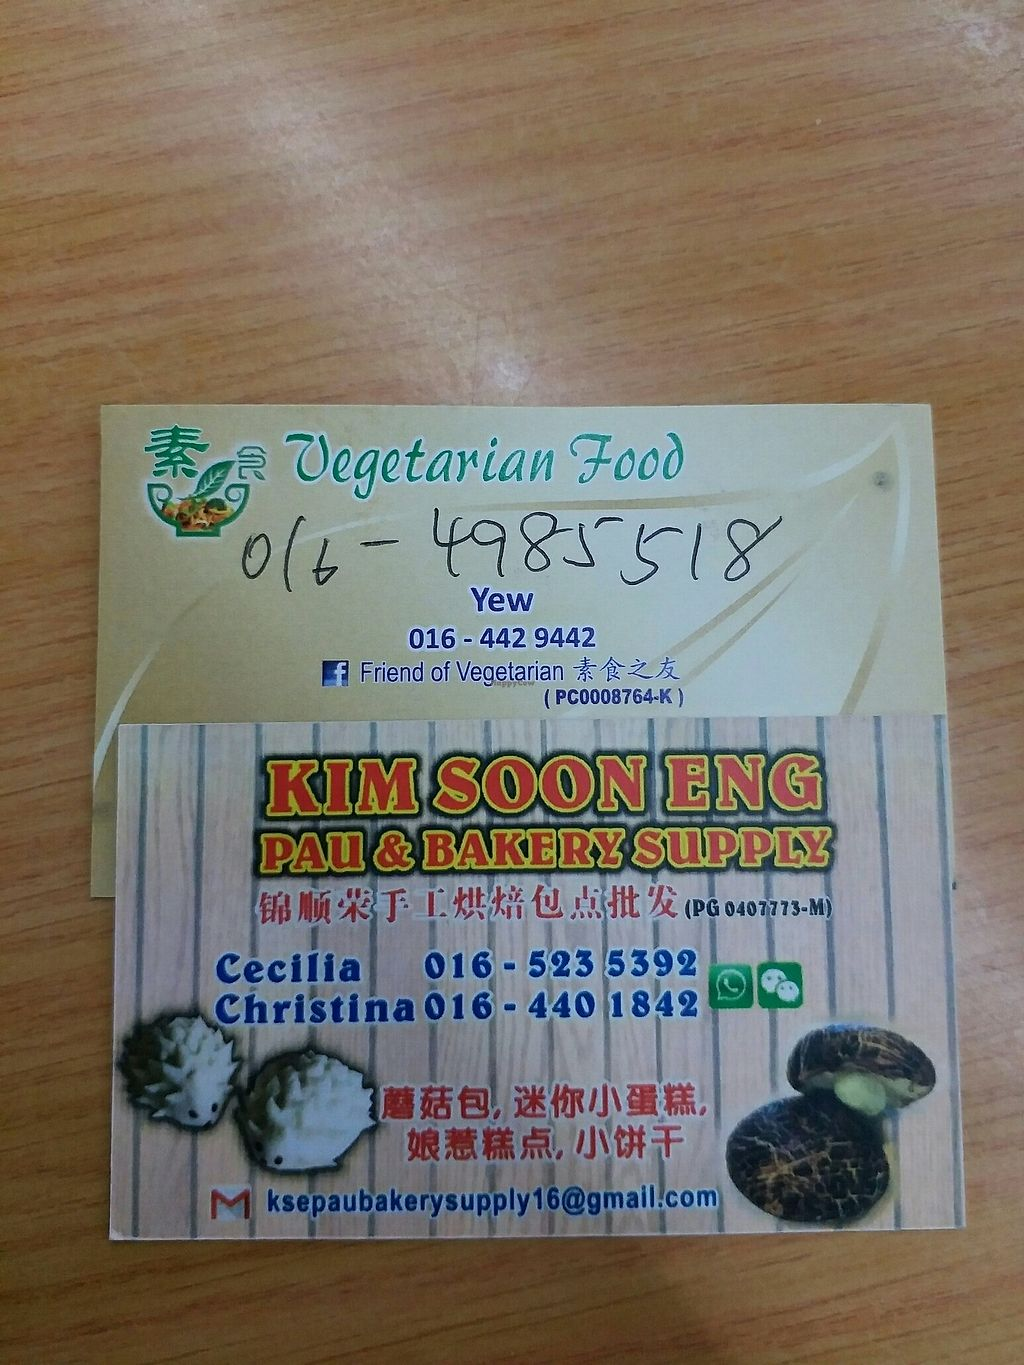 "Photo of Friend of Vegetarian Food Stall - Asia Cafe  by <a href=""/members/profile/WenYou"">WenYou</a> <br/>name card of the place <br/> July 26, 2017  - <a href='/contact/abuse/image/94819/284901'>Report</a>"